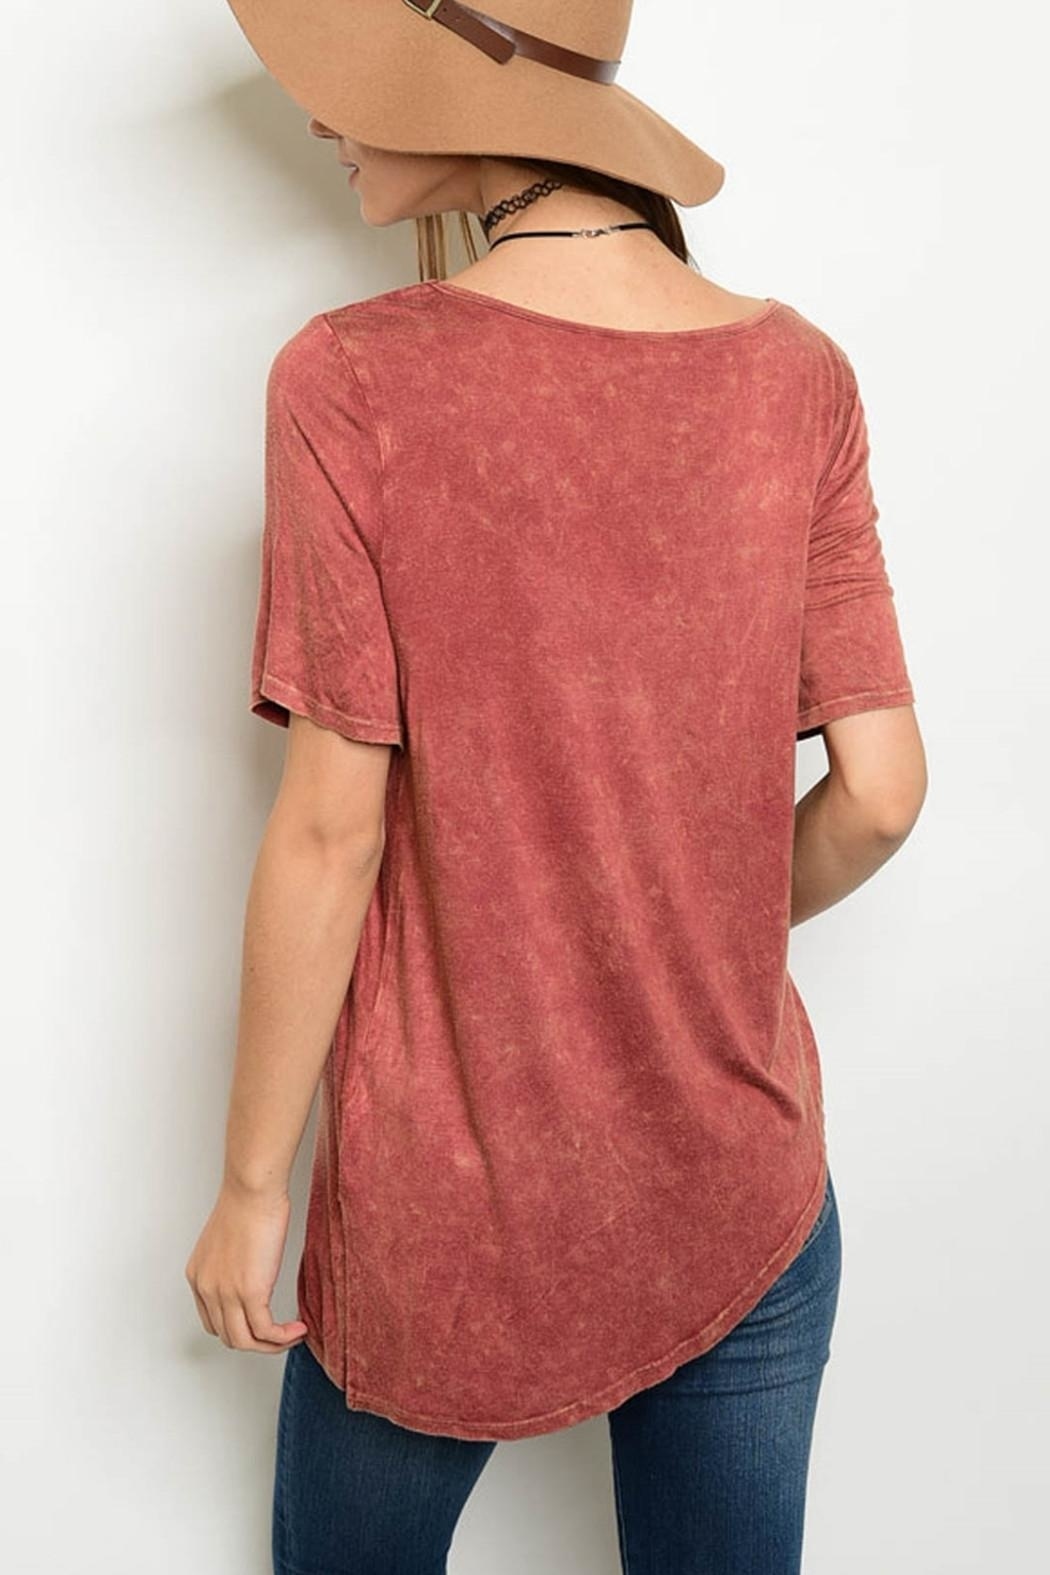 PRIMI Mineral Asymmetrical Tee - Front Full Image